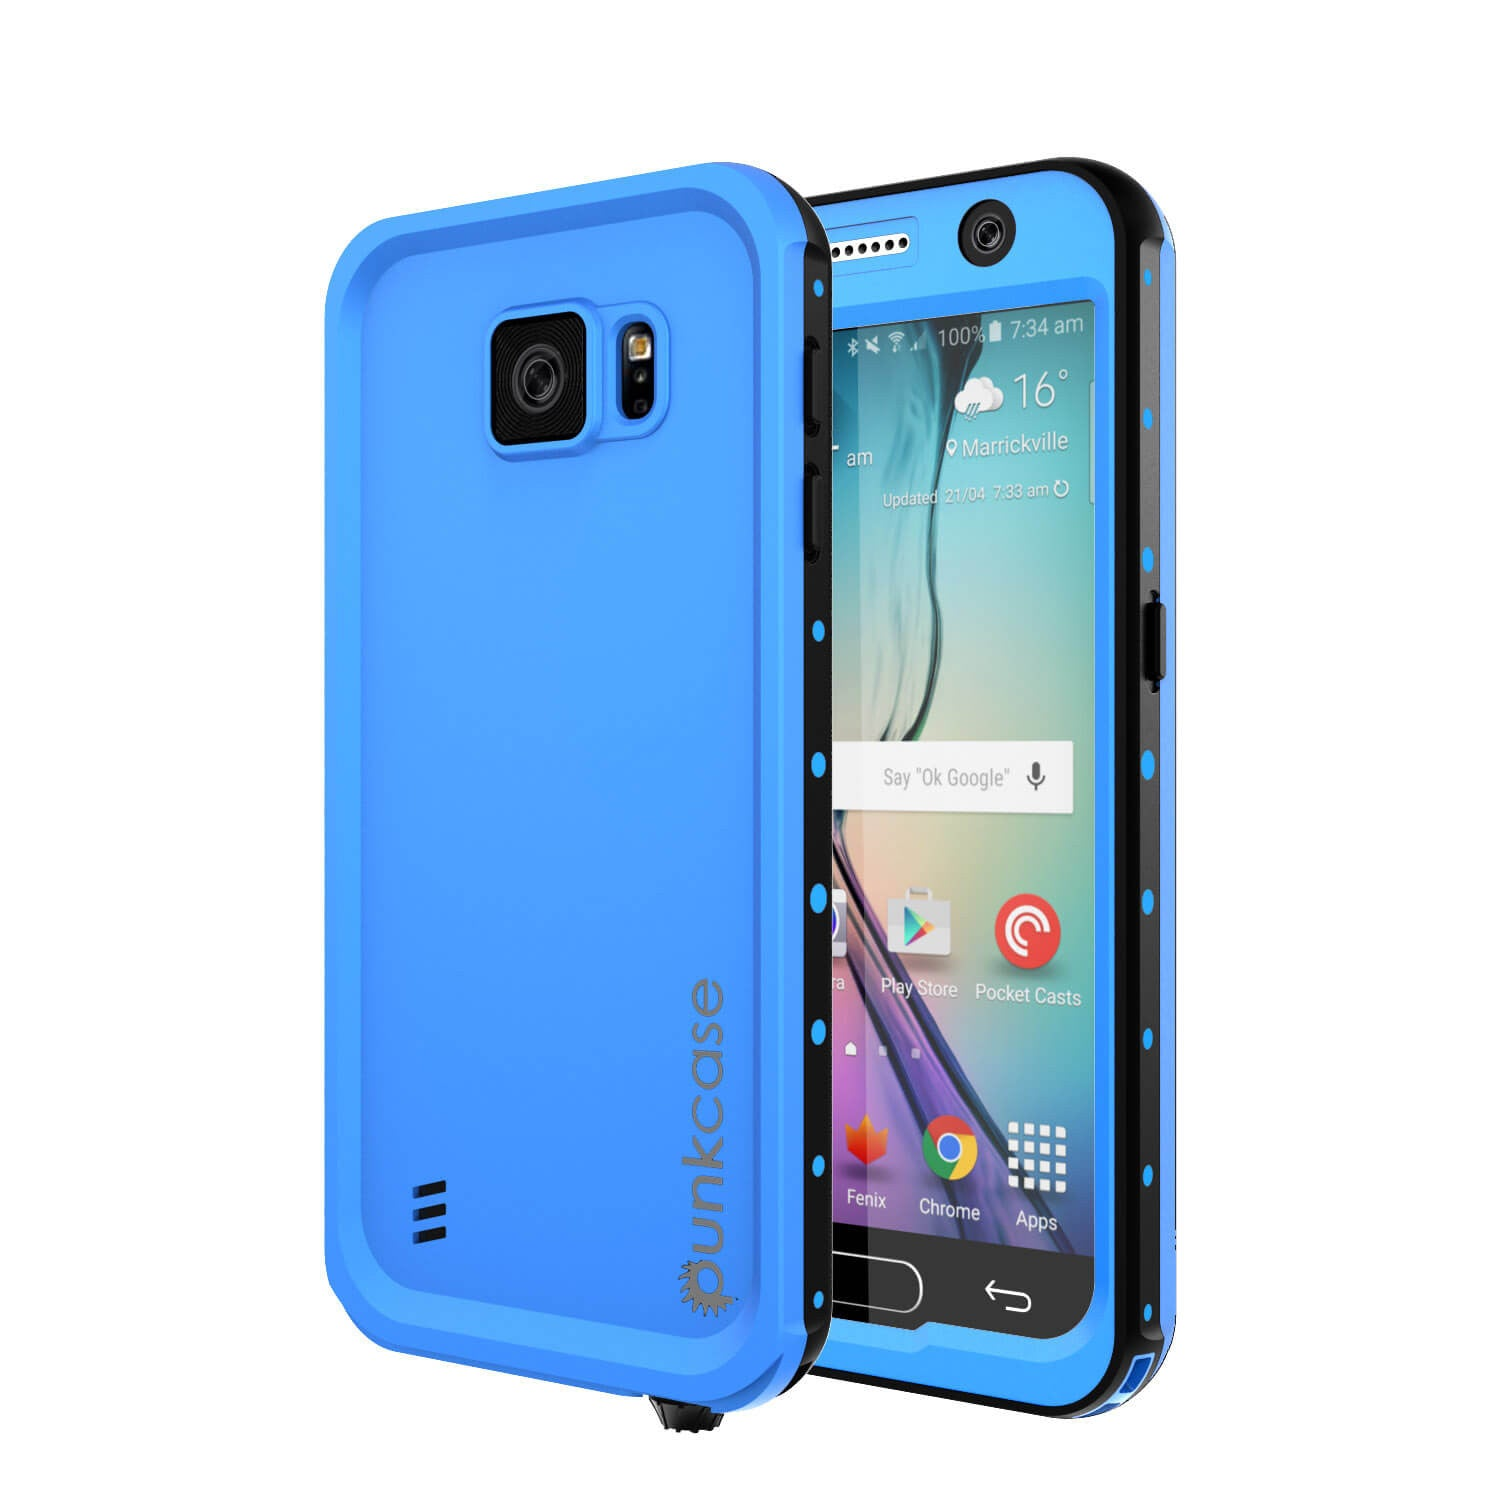 Galaxy S6 Waterproof Case PunkCase StudStar Light Blue Thin 6.6ft Underwater IP68 Shock/Dirt Proof